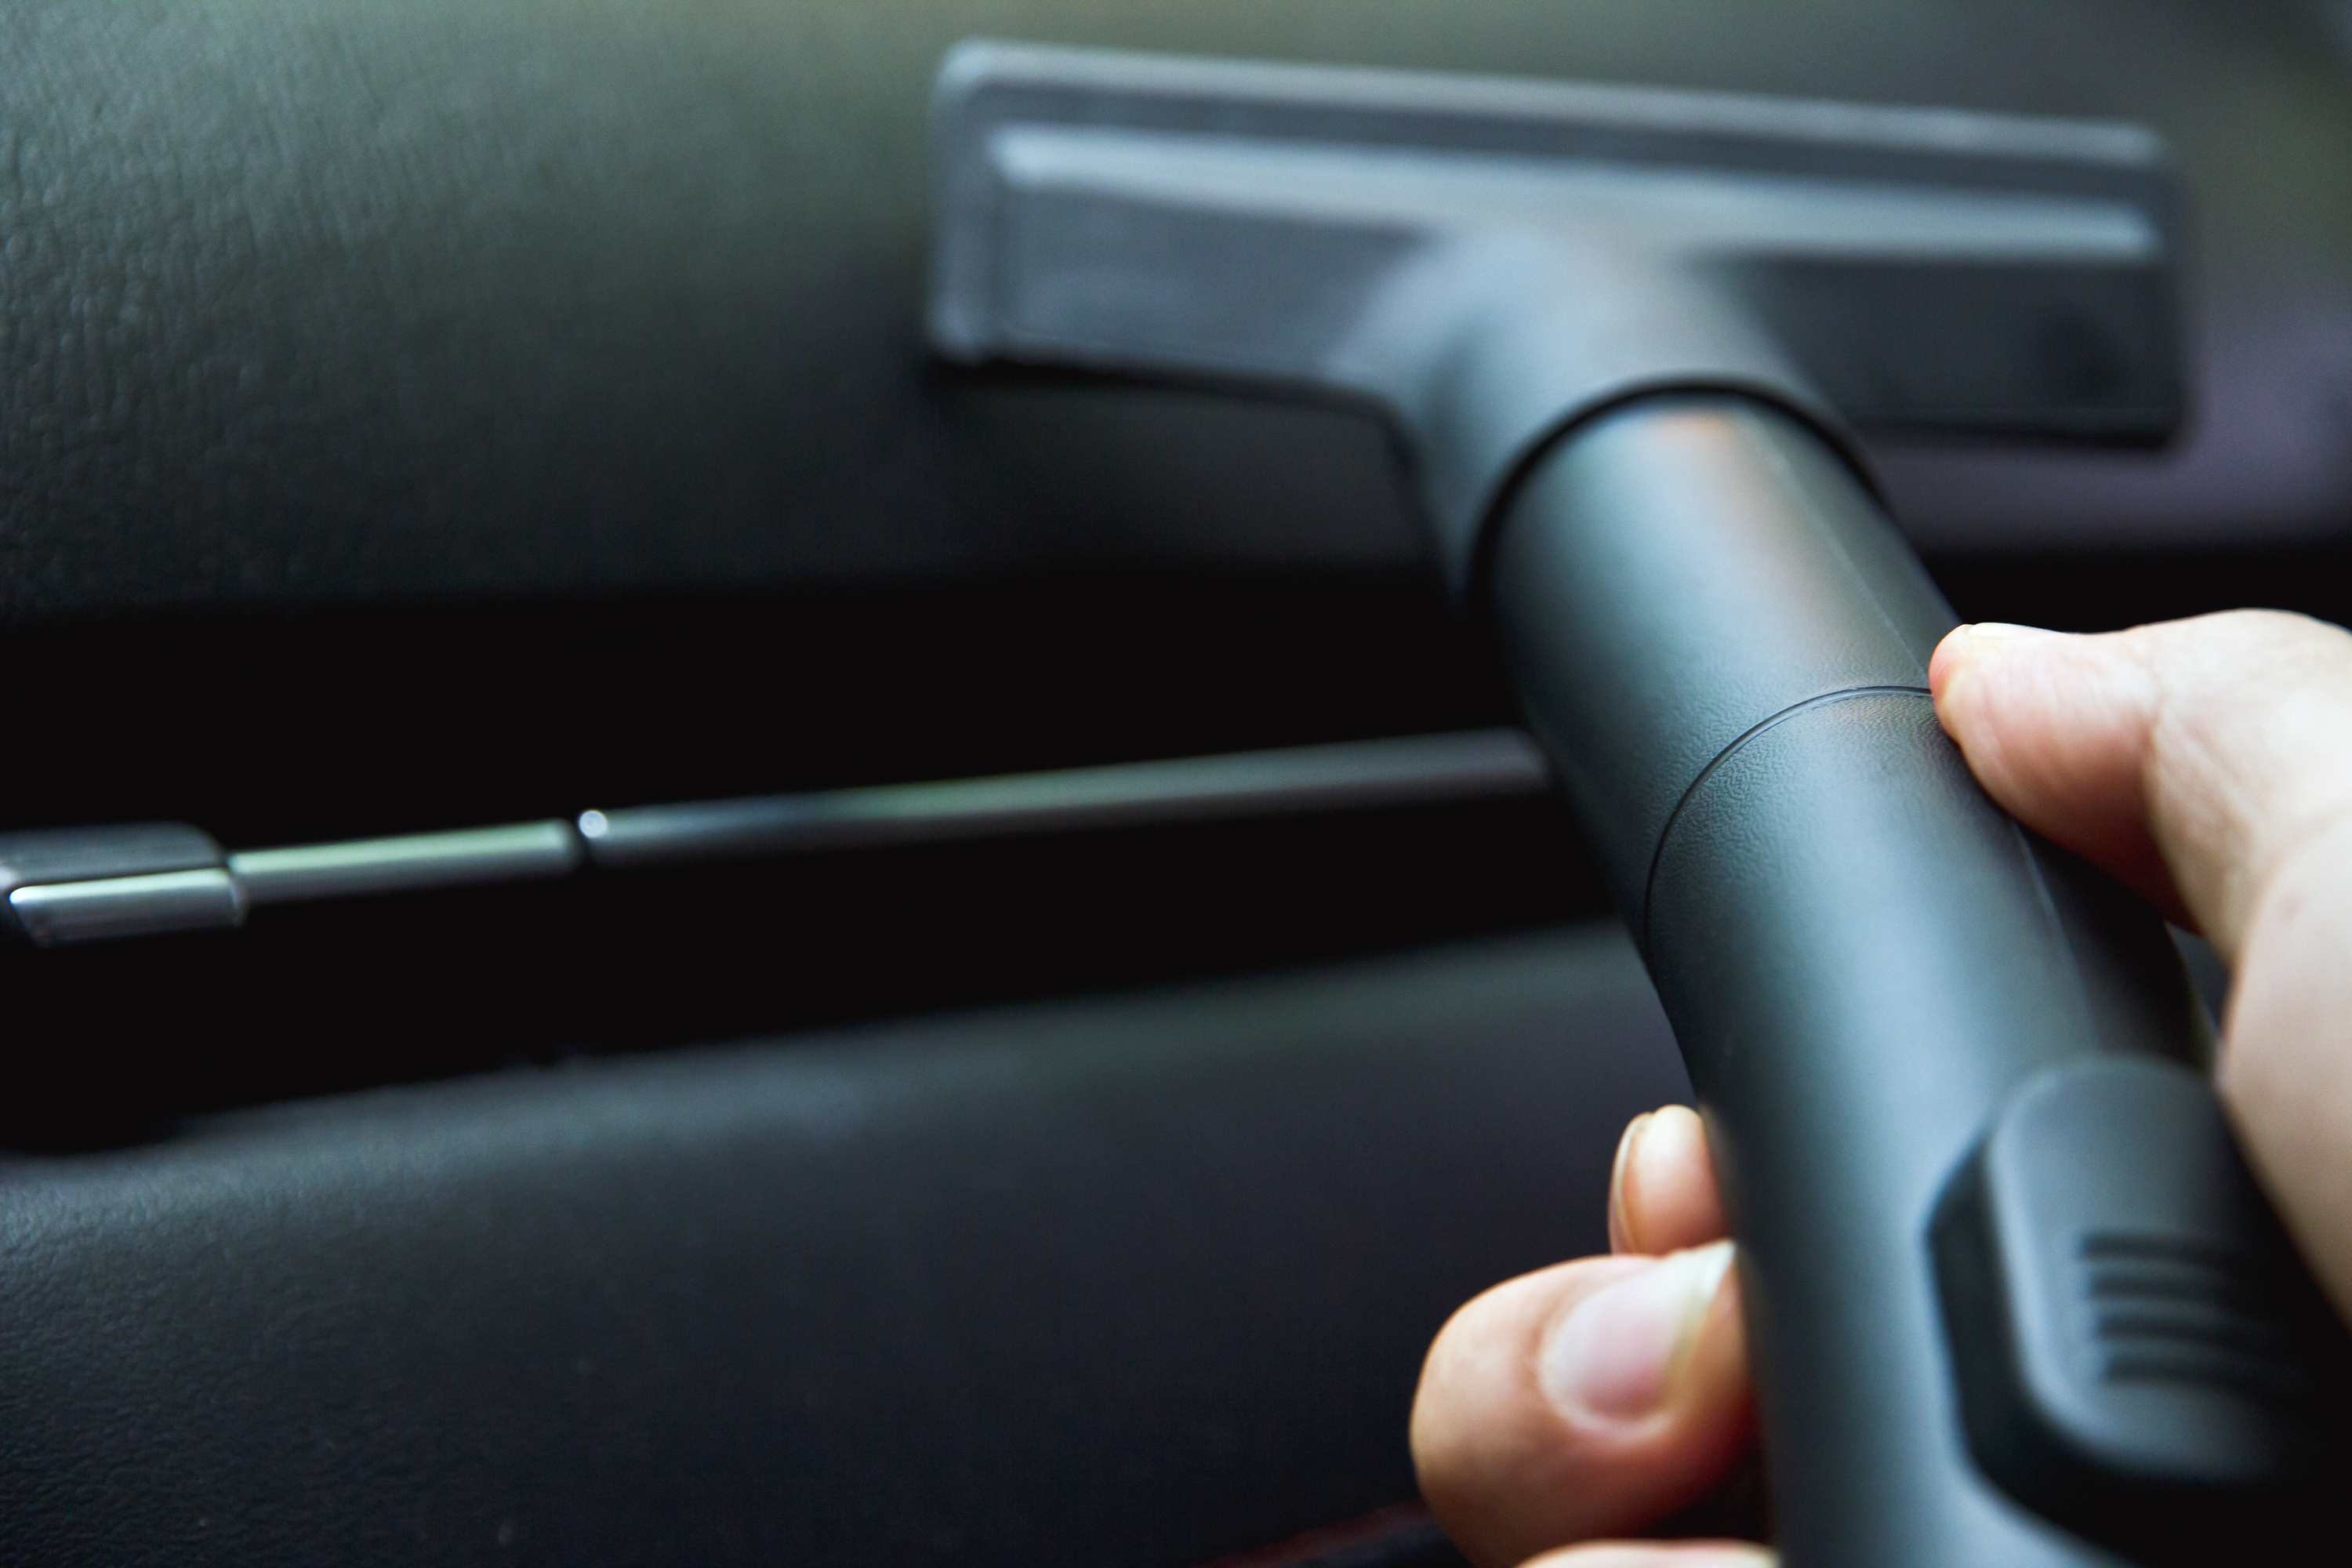 Hand cleaning car with vacuum cleaner